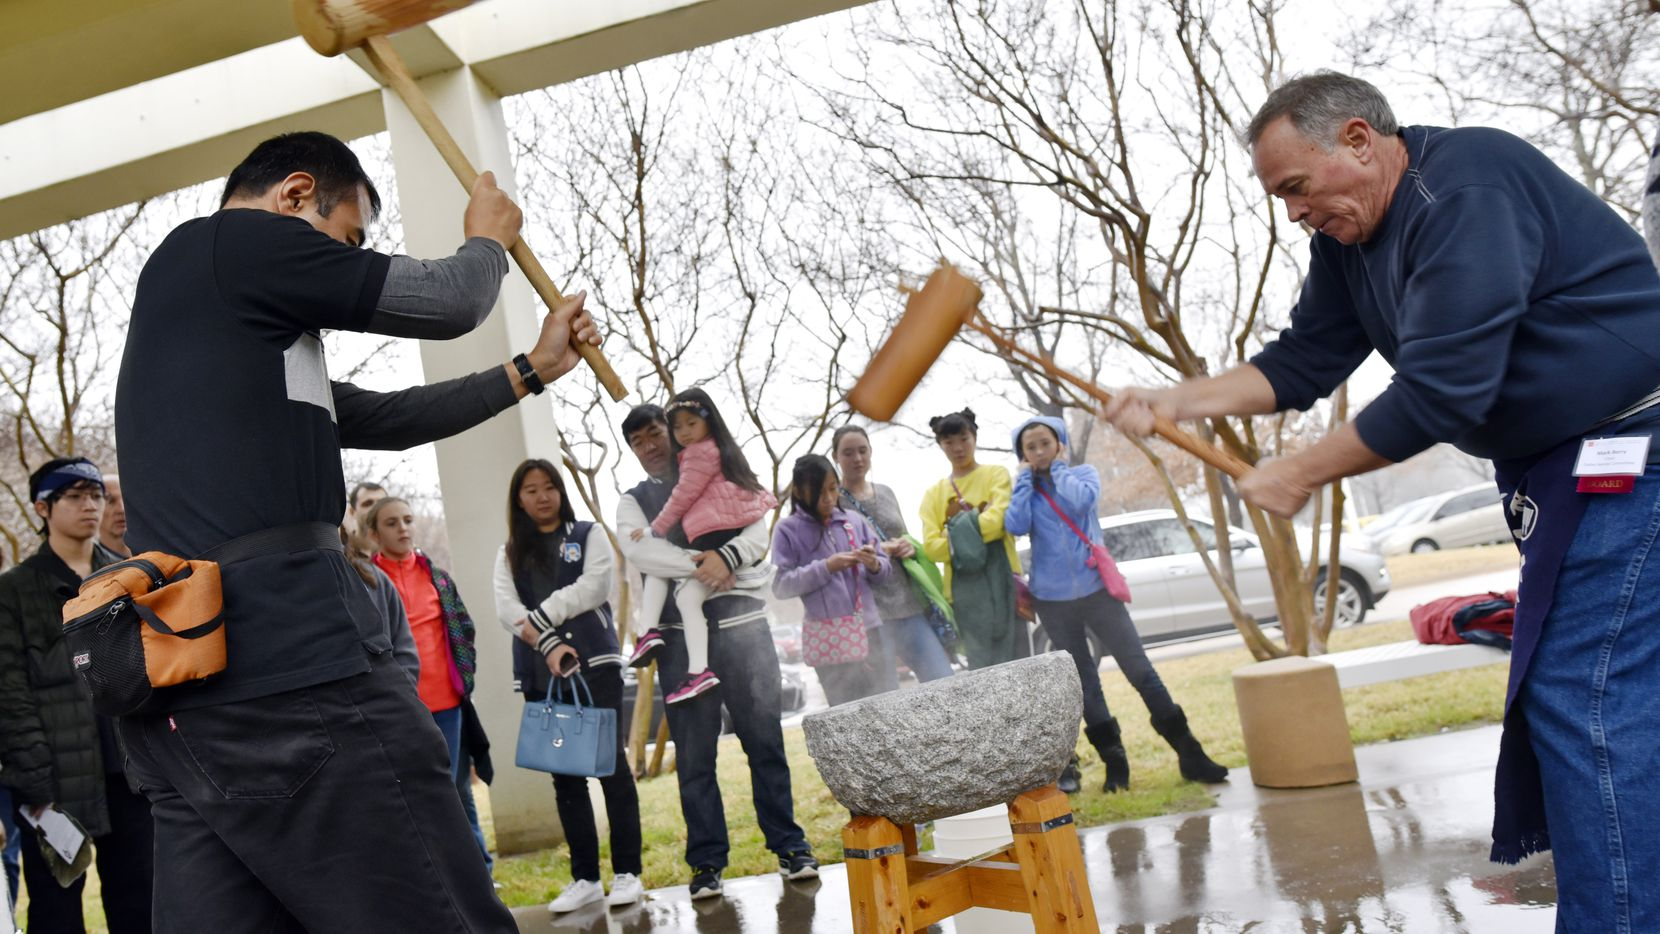 Naoki Hariyama, 46, left, and Mark Berry, 56, right, perform a rice pounding called mochitsuki at the Mochitsuki New Year's celebration, hosted by the Japan America Society of D-FW.